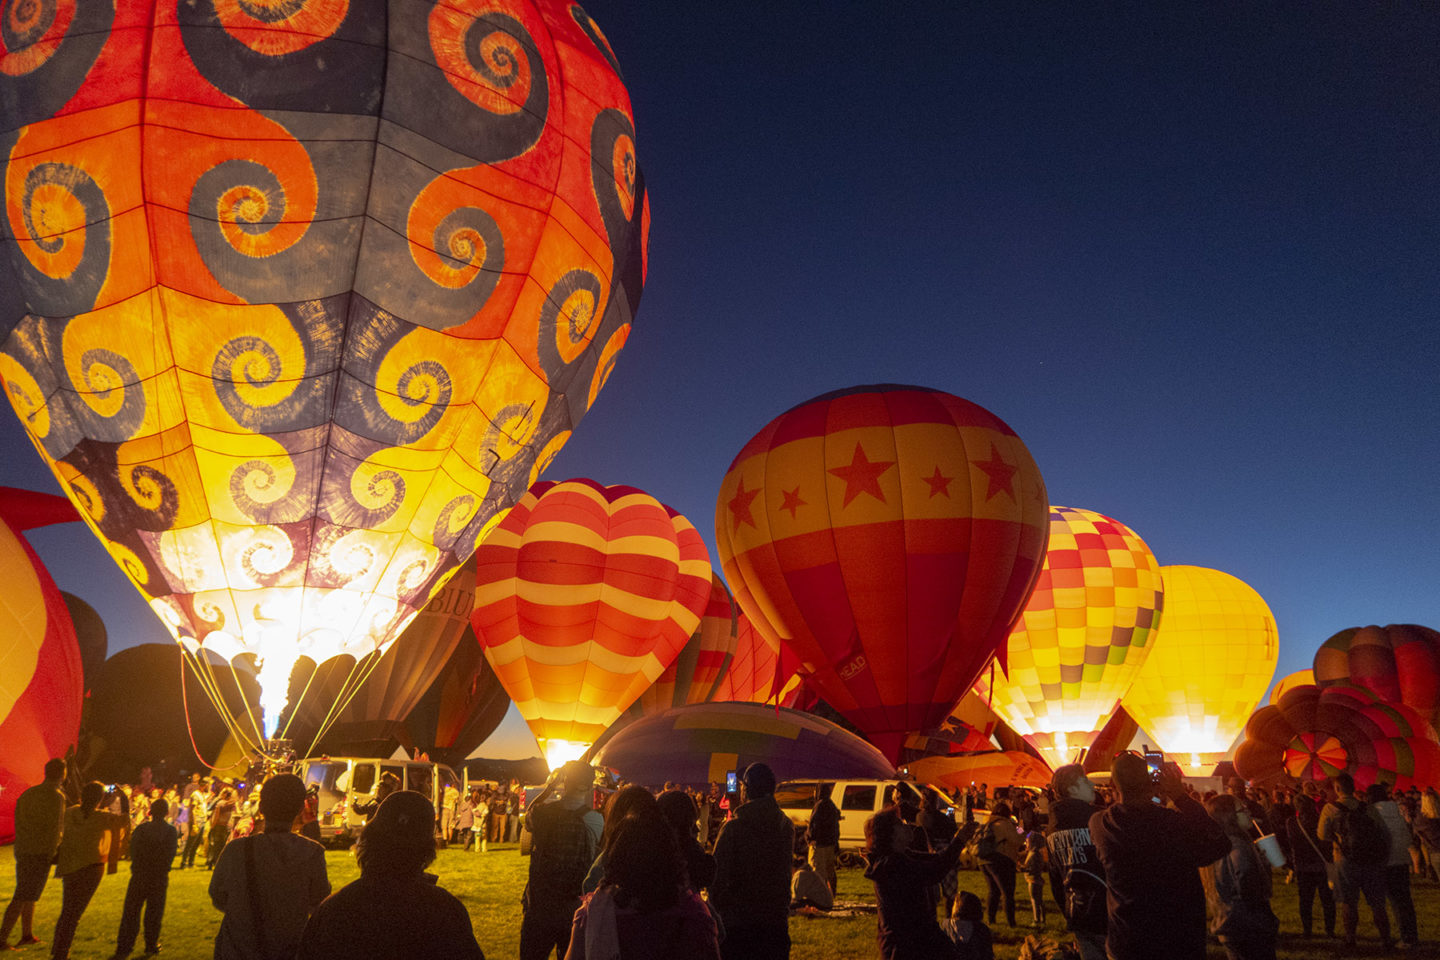 Night Glow session at Albuquerque Balloon Fiesta